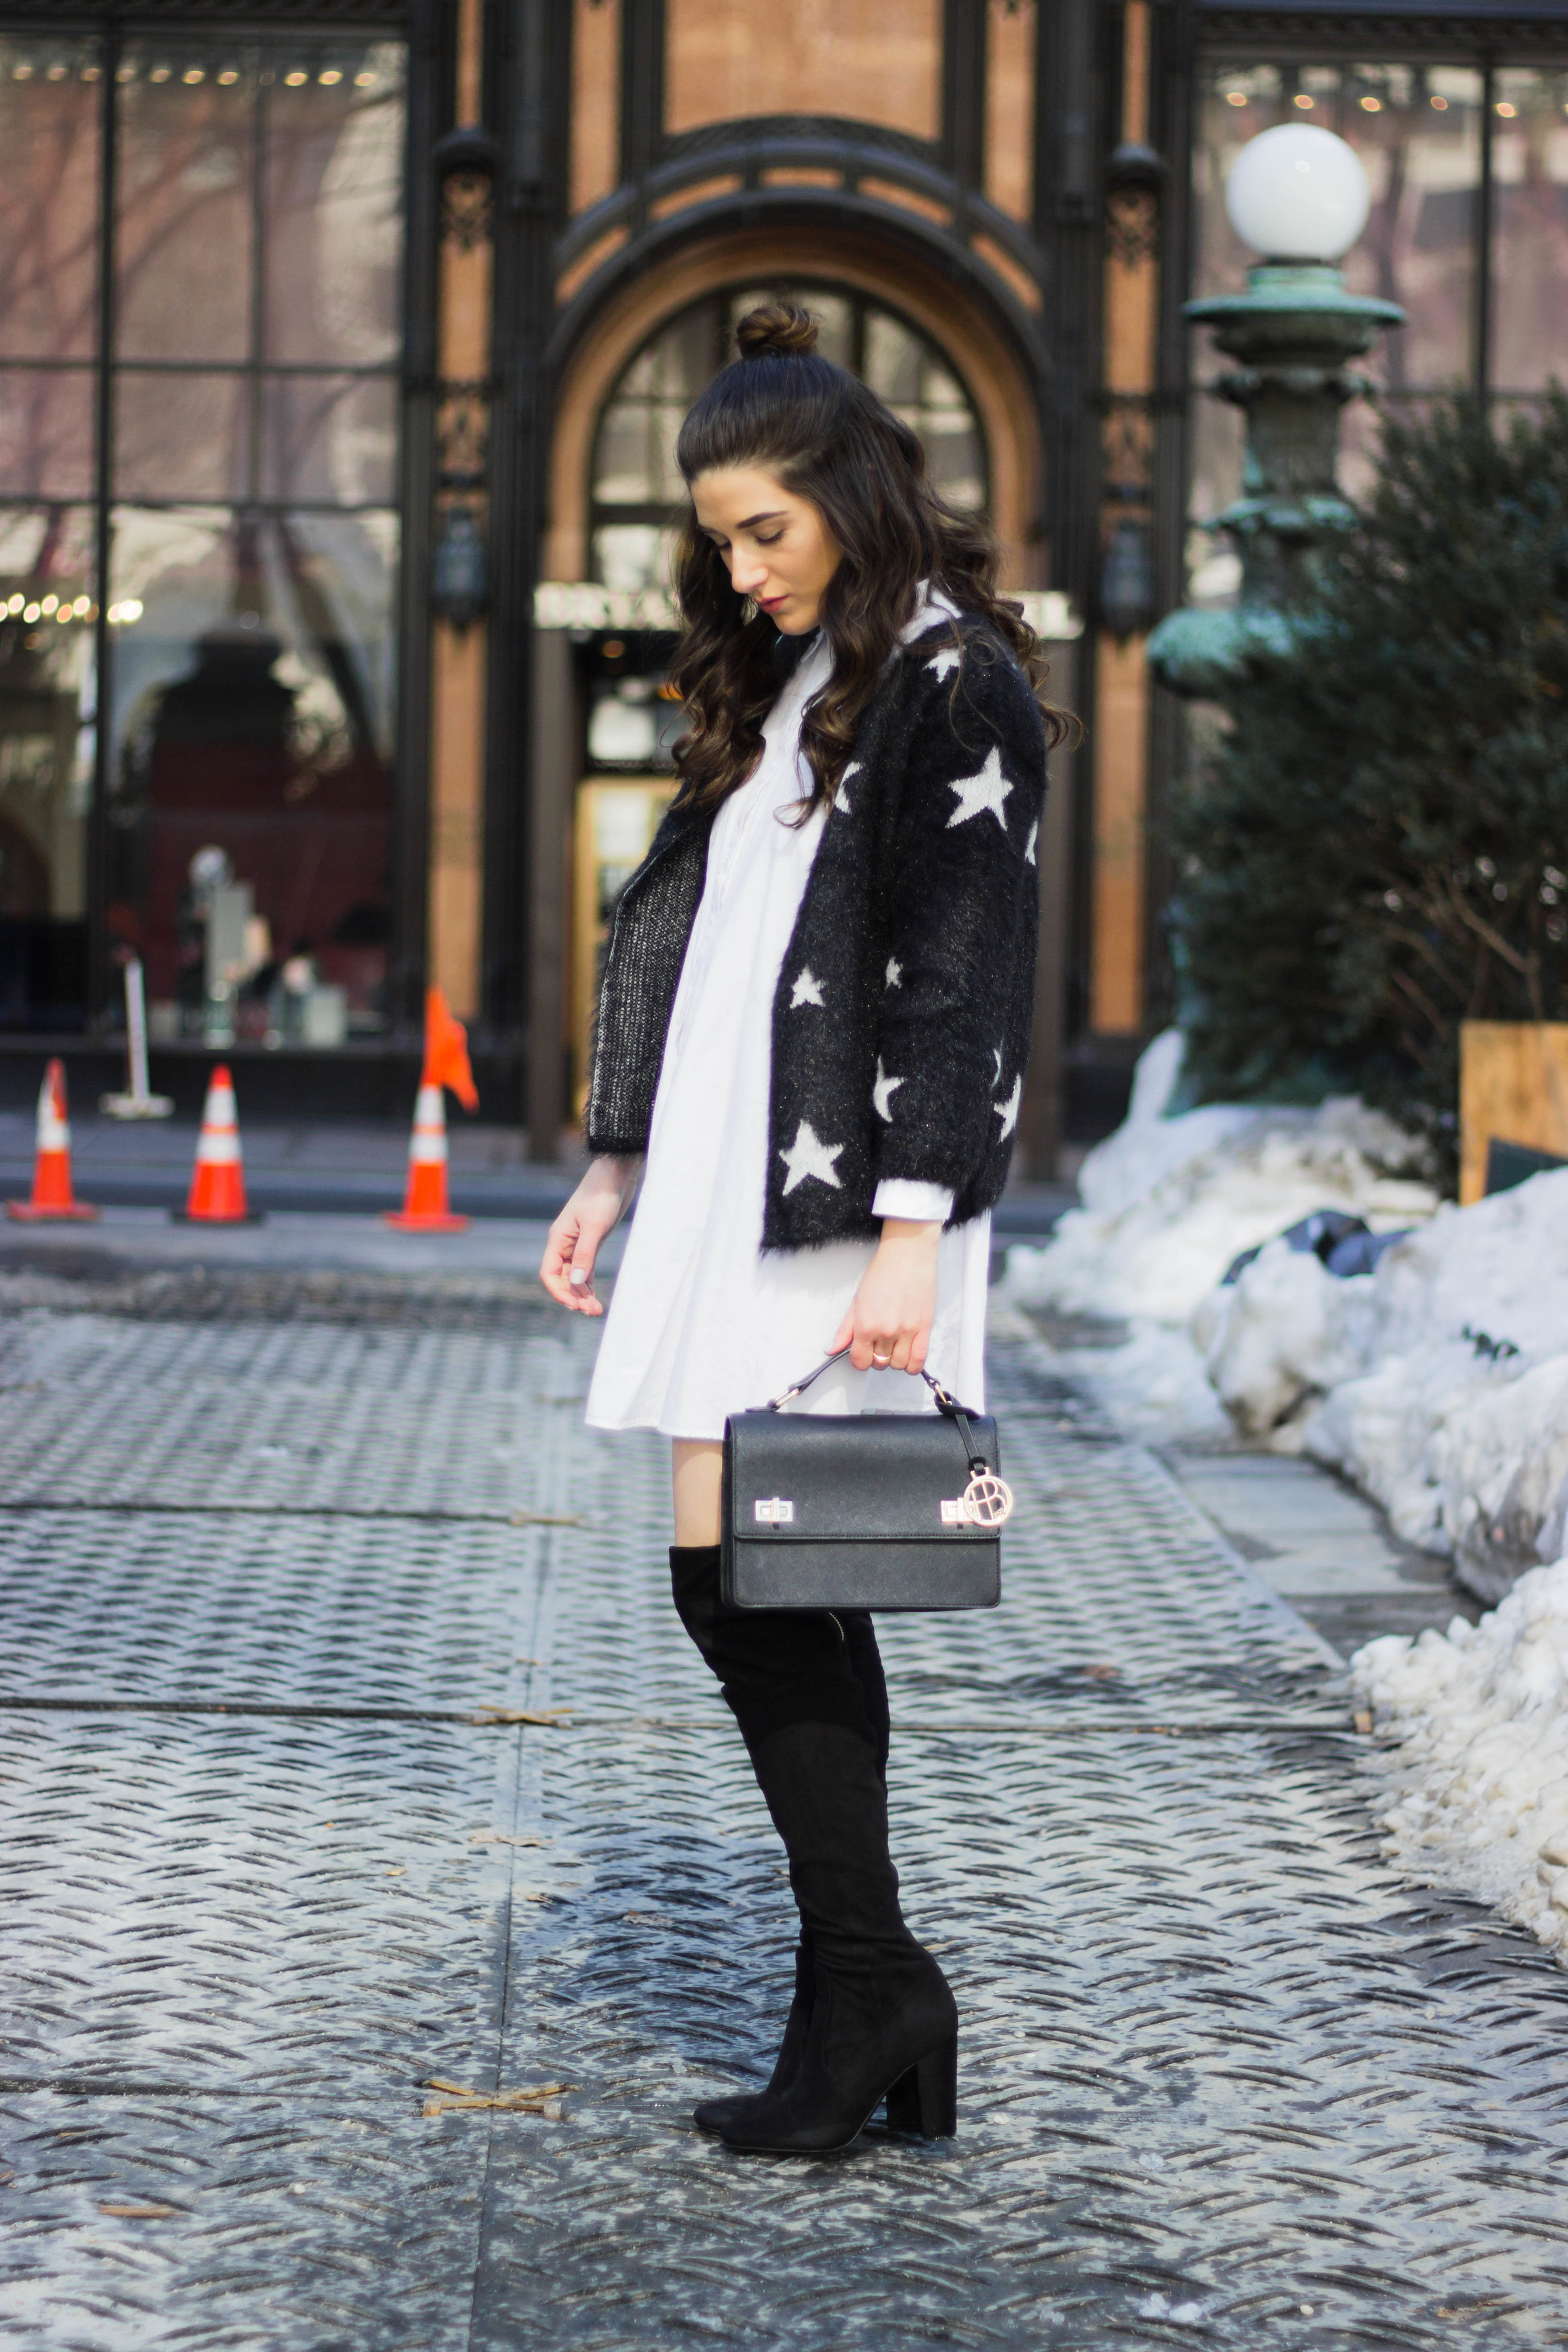 Trescool Star Jacket How NYC Changed My Style Esther Santer Fashion Blog NYC Street Style Blogger Outfit OOTD Trendy Henri Bendel Black Bag Over The Knee Boots Topknot Bun Purse Women Shoes Girl Zara White Button Down Shirt Dress Wearing Shopping Shop.jpg